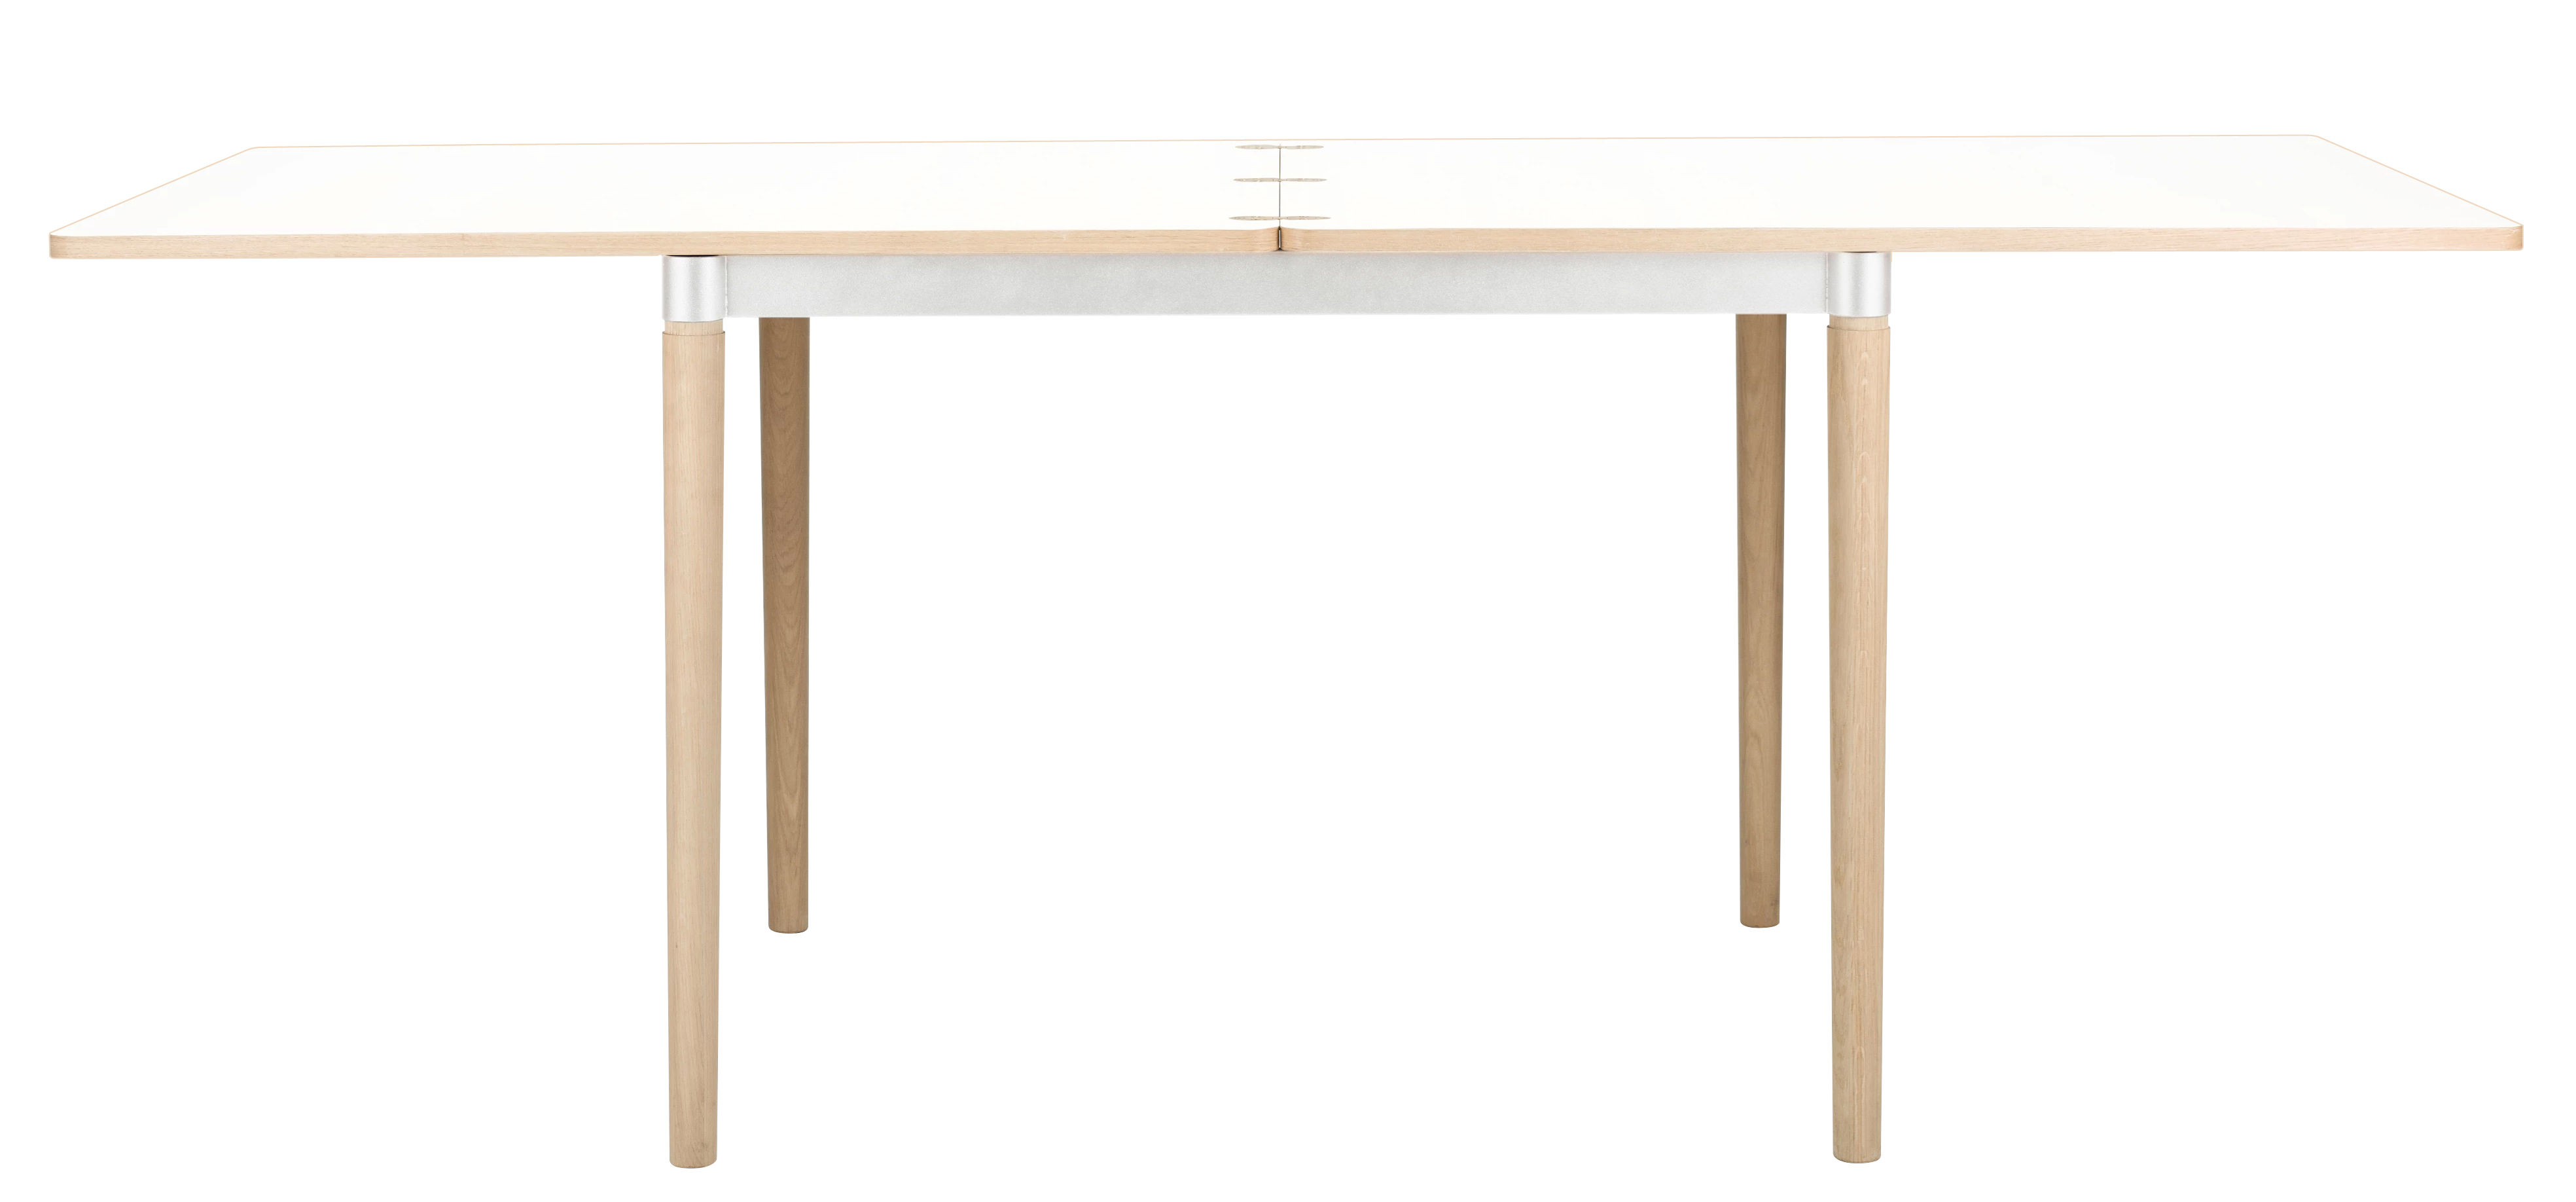 Trends - Take your seat! - Double up Extending table - L 95 to 192 cm by Bolia - White / Legs in white oak - Light oak wood, Stratified, Varnished steel